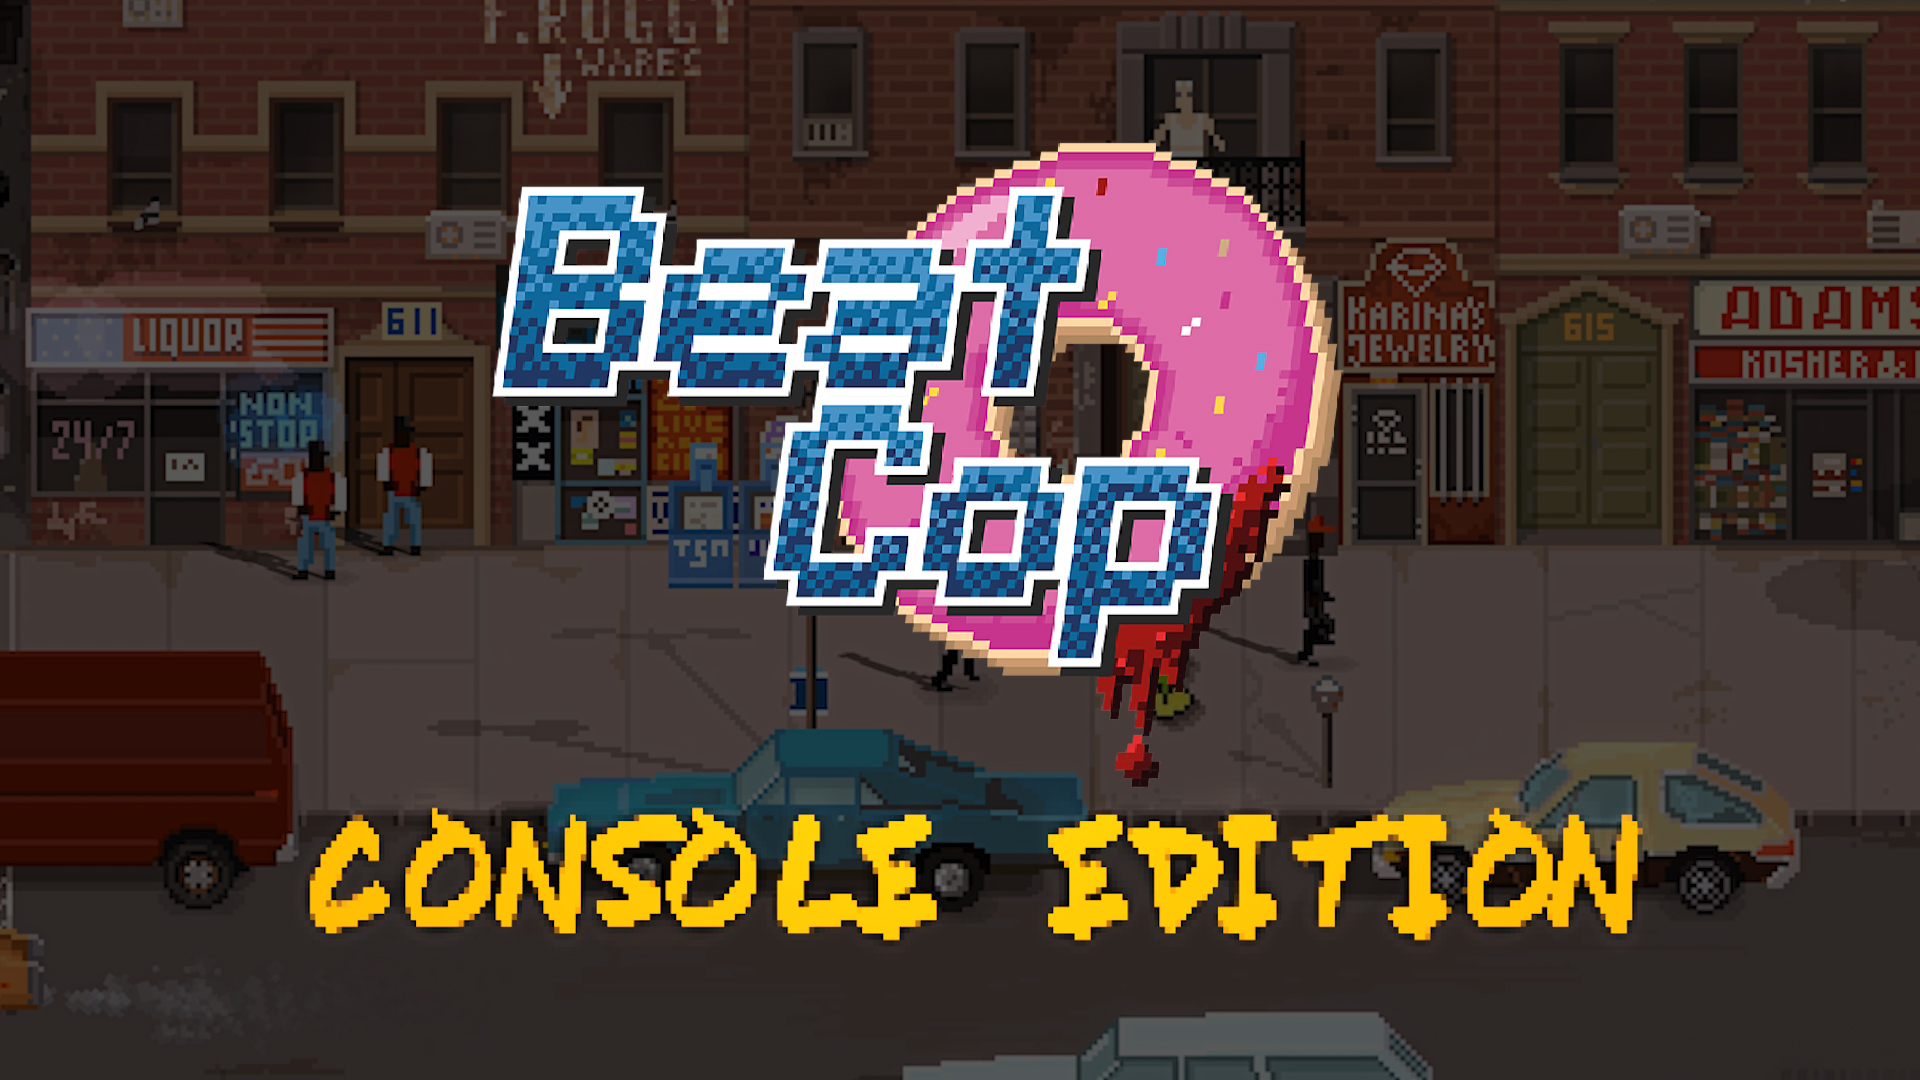 beat_cop_console_edition